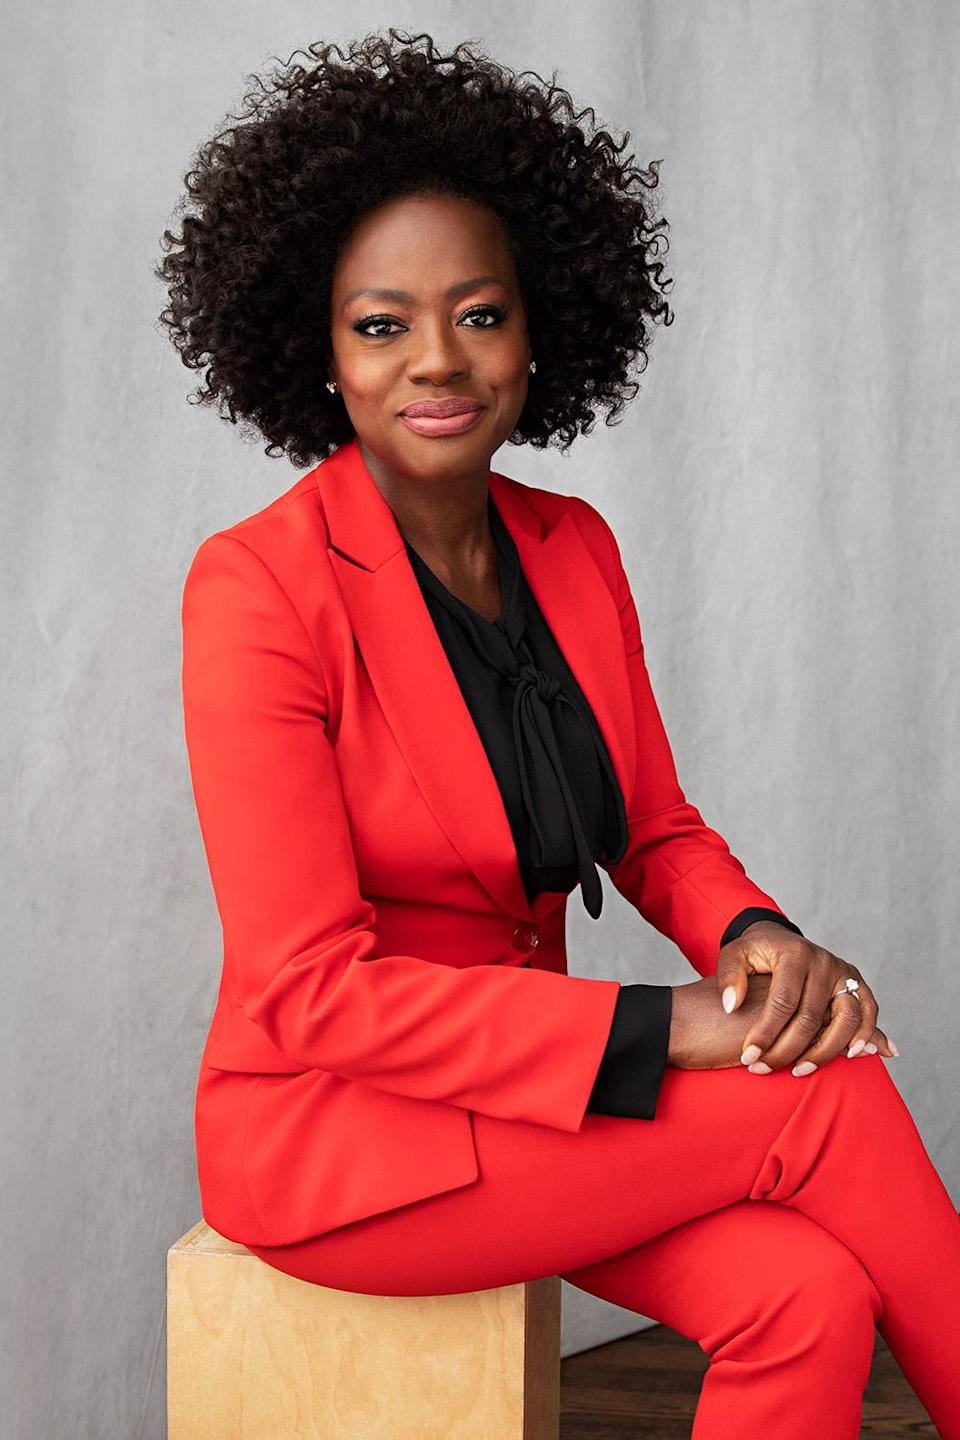 <p>needs a Grammy, having already won an Oscar for Best Performance by an Actress in a Supporting Role for <em>Fences</em>, an Emmy for outstanding lead actress in a drama series for <em>How to Get Away with Murder</em> and Tonys for <em>King Hedley II</em> and the Broadway production of <em>Fences</em>.</p>